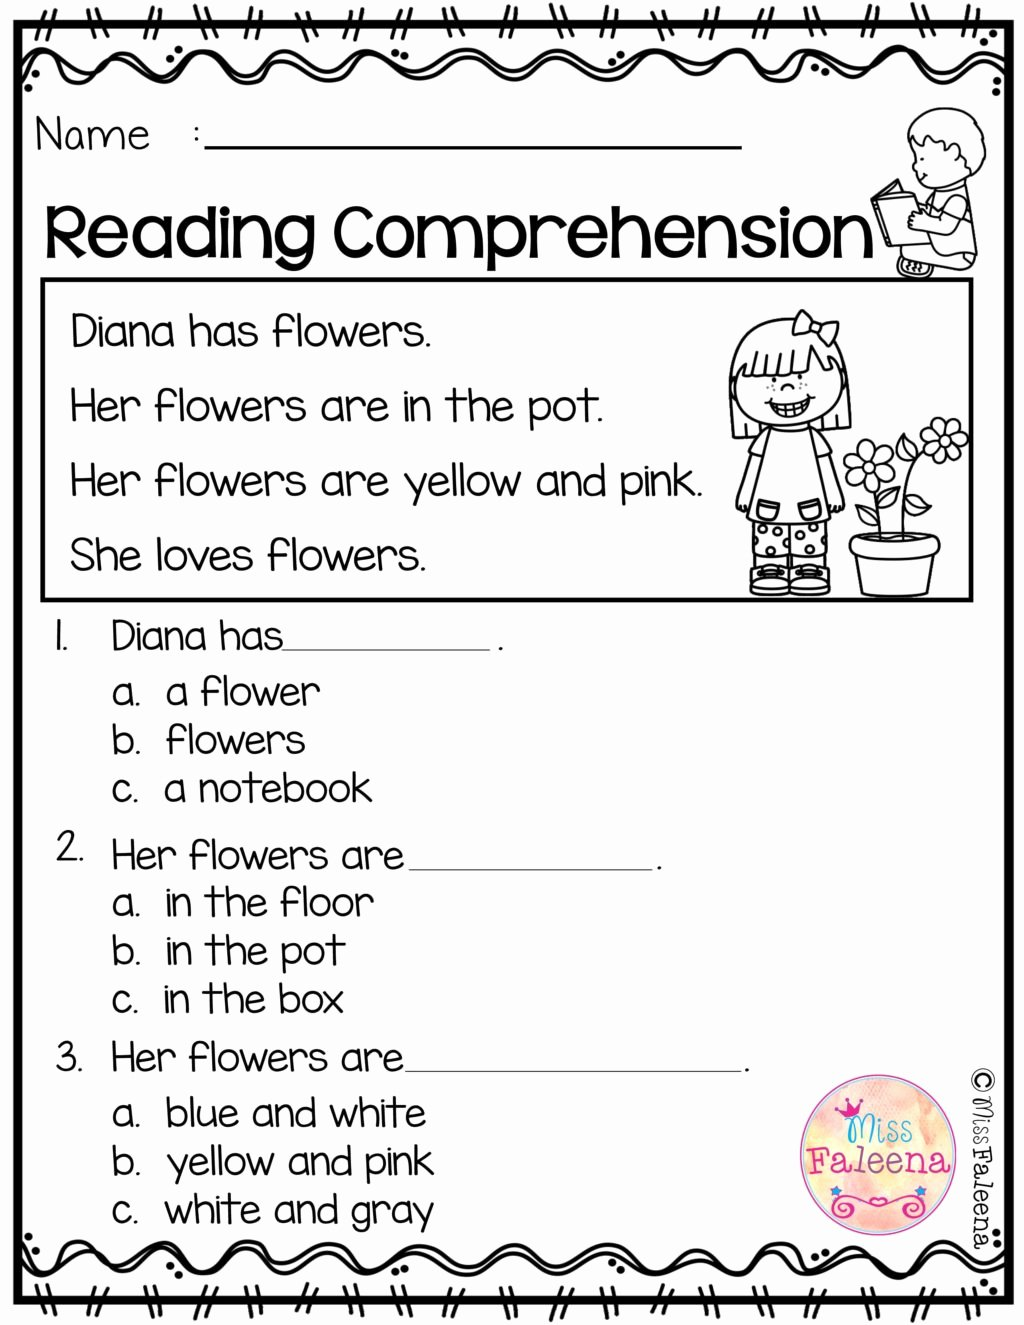 Pre Reading Worksheets for Preschoolers Printable Worksheet Free Reading Worksheets for Preschool Printable